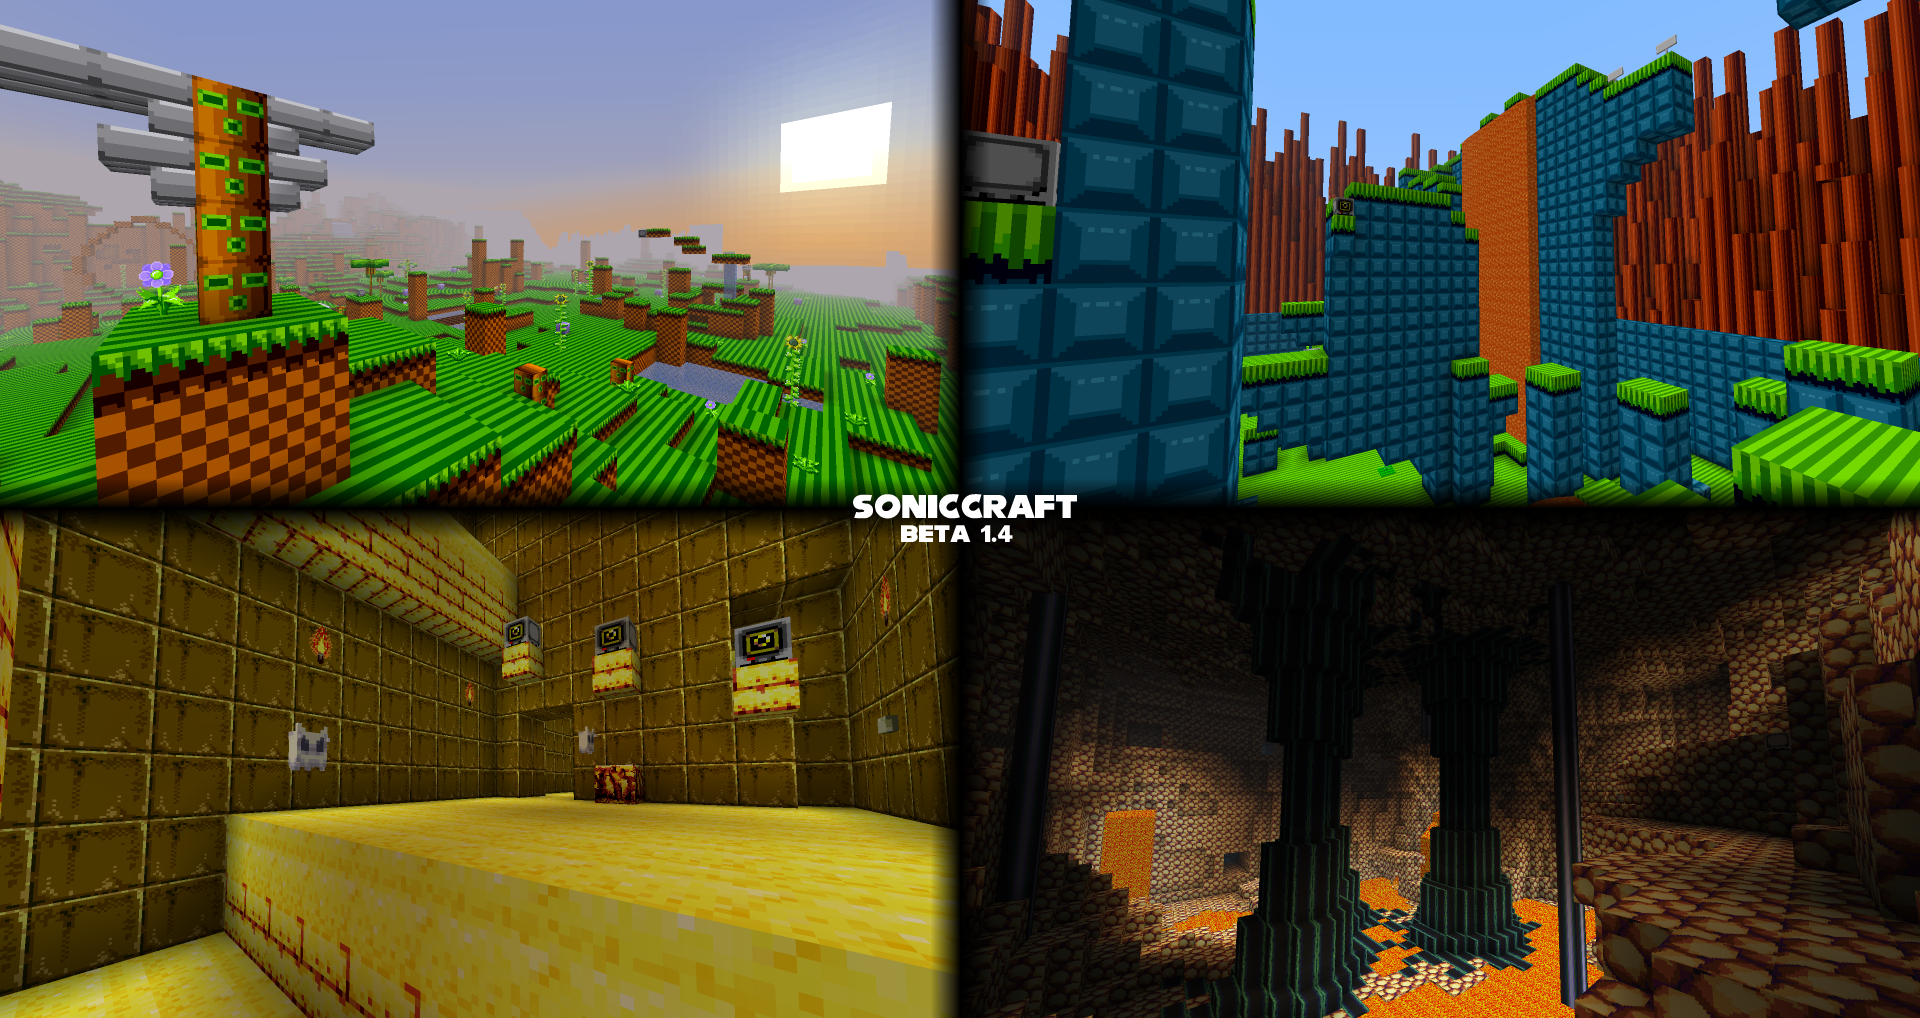 Adv Creation Includes Resource Pack Soniccraft Celebrating 20 Years Of Sonic 175 000 Downloads New Update Soon Maps Mapping And Modding Java Edition Minecraft Forum Minecraft Forum